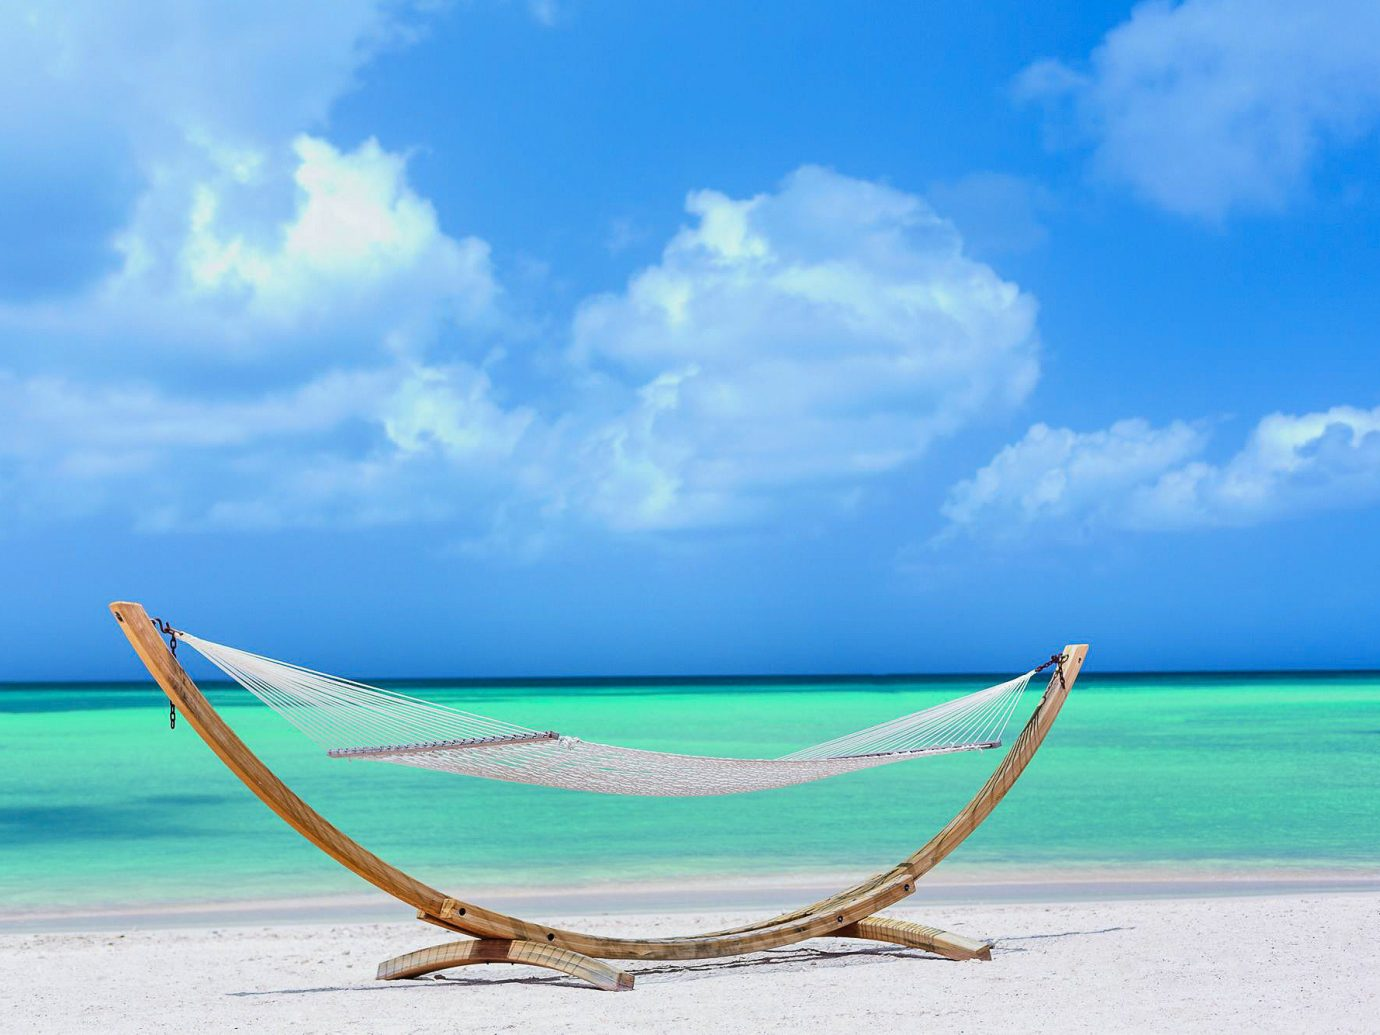 Hotels Romance sky water outdoor blue Sea Beach caribbean coastal and oceanic landforms vacation Ocean shore azure tropics cloud horizon calm bed Nature wave turquoise hammock clouds sandy day distance